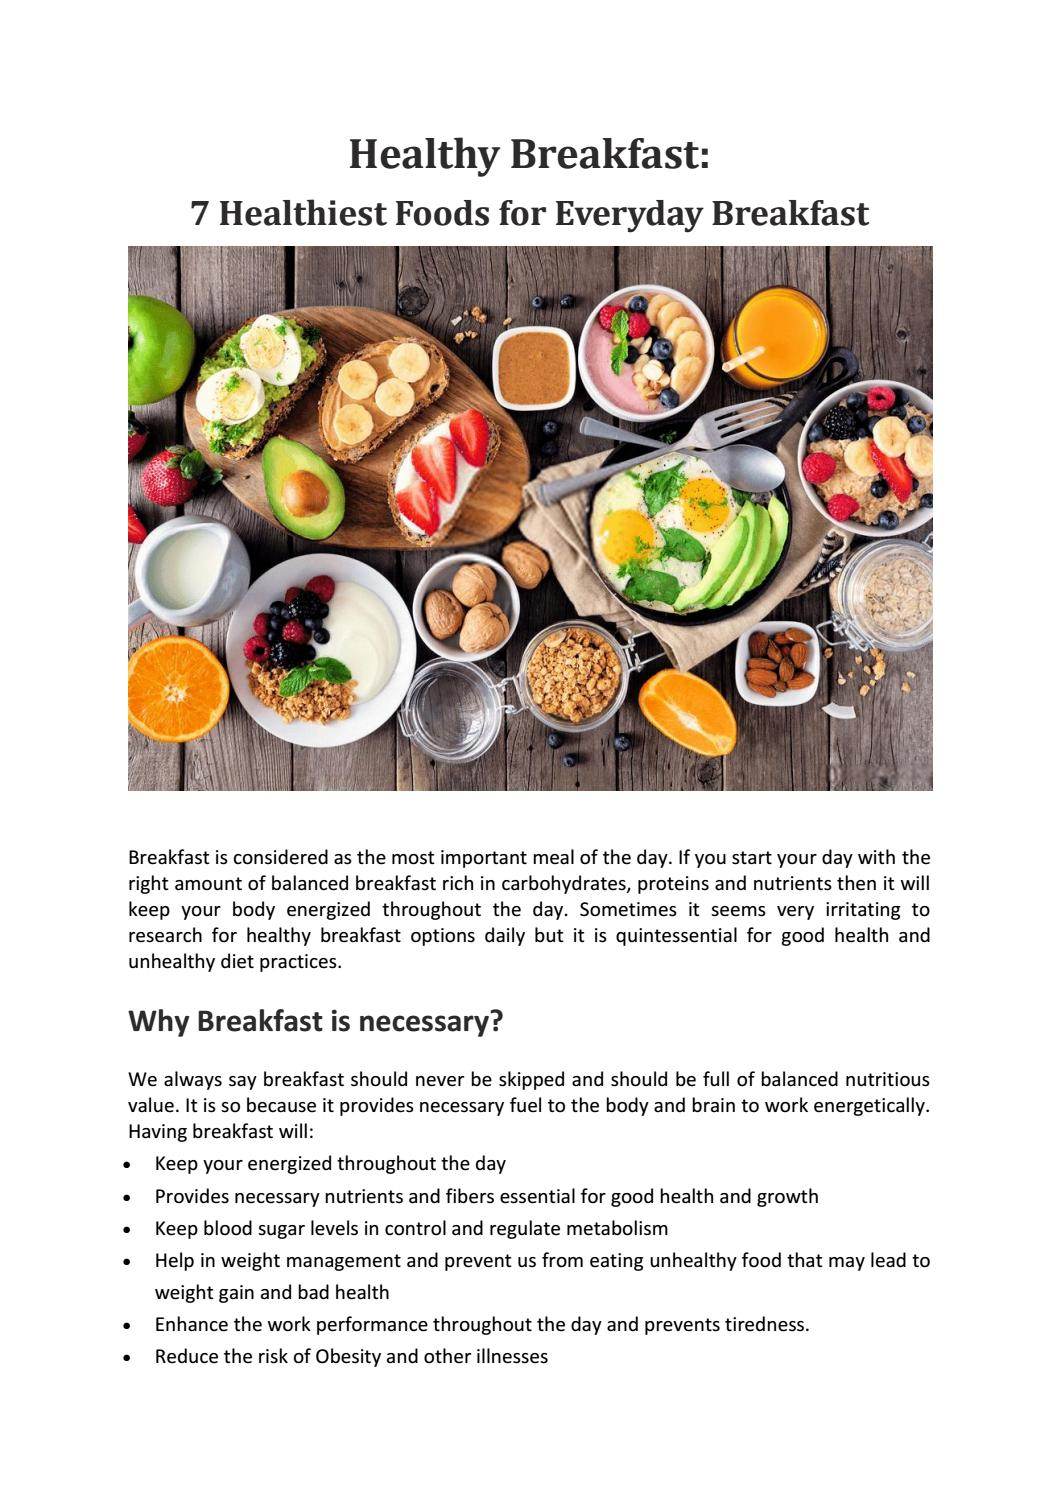 Healthy Breakfast 7 Healthiest Foods For Everyday Breakfast By Indoasiangroceries Issuu